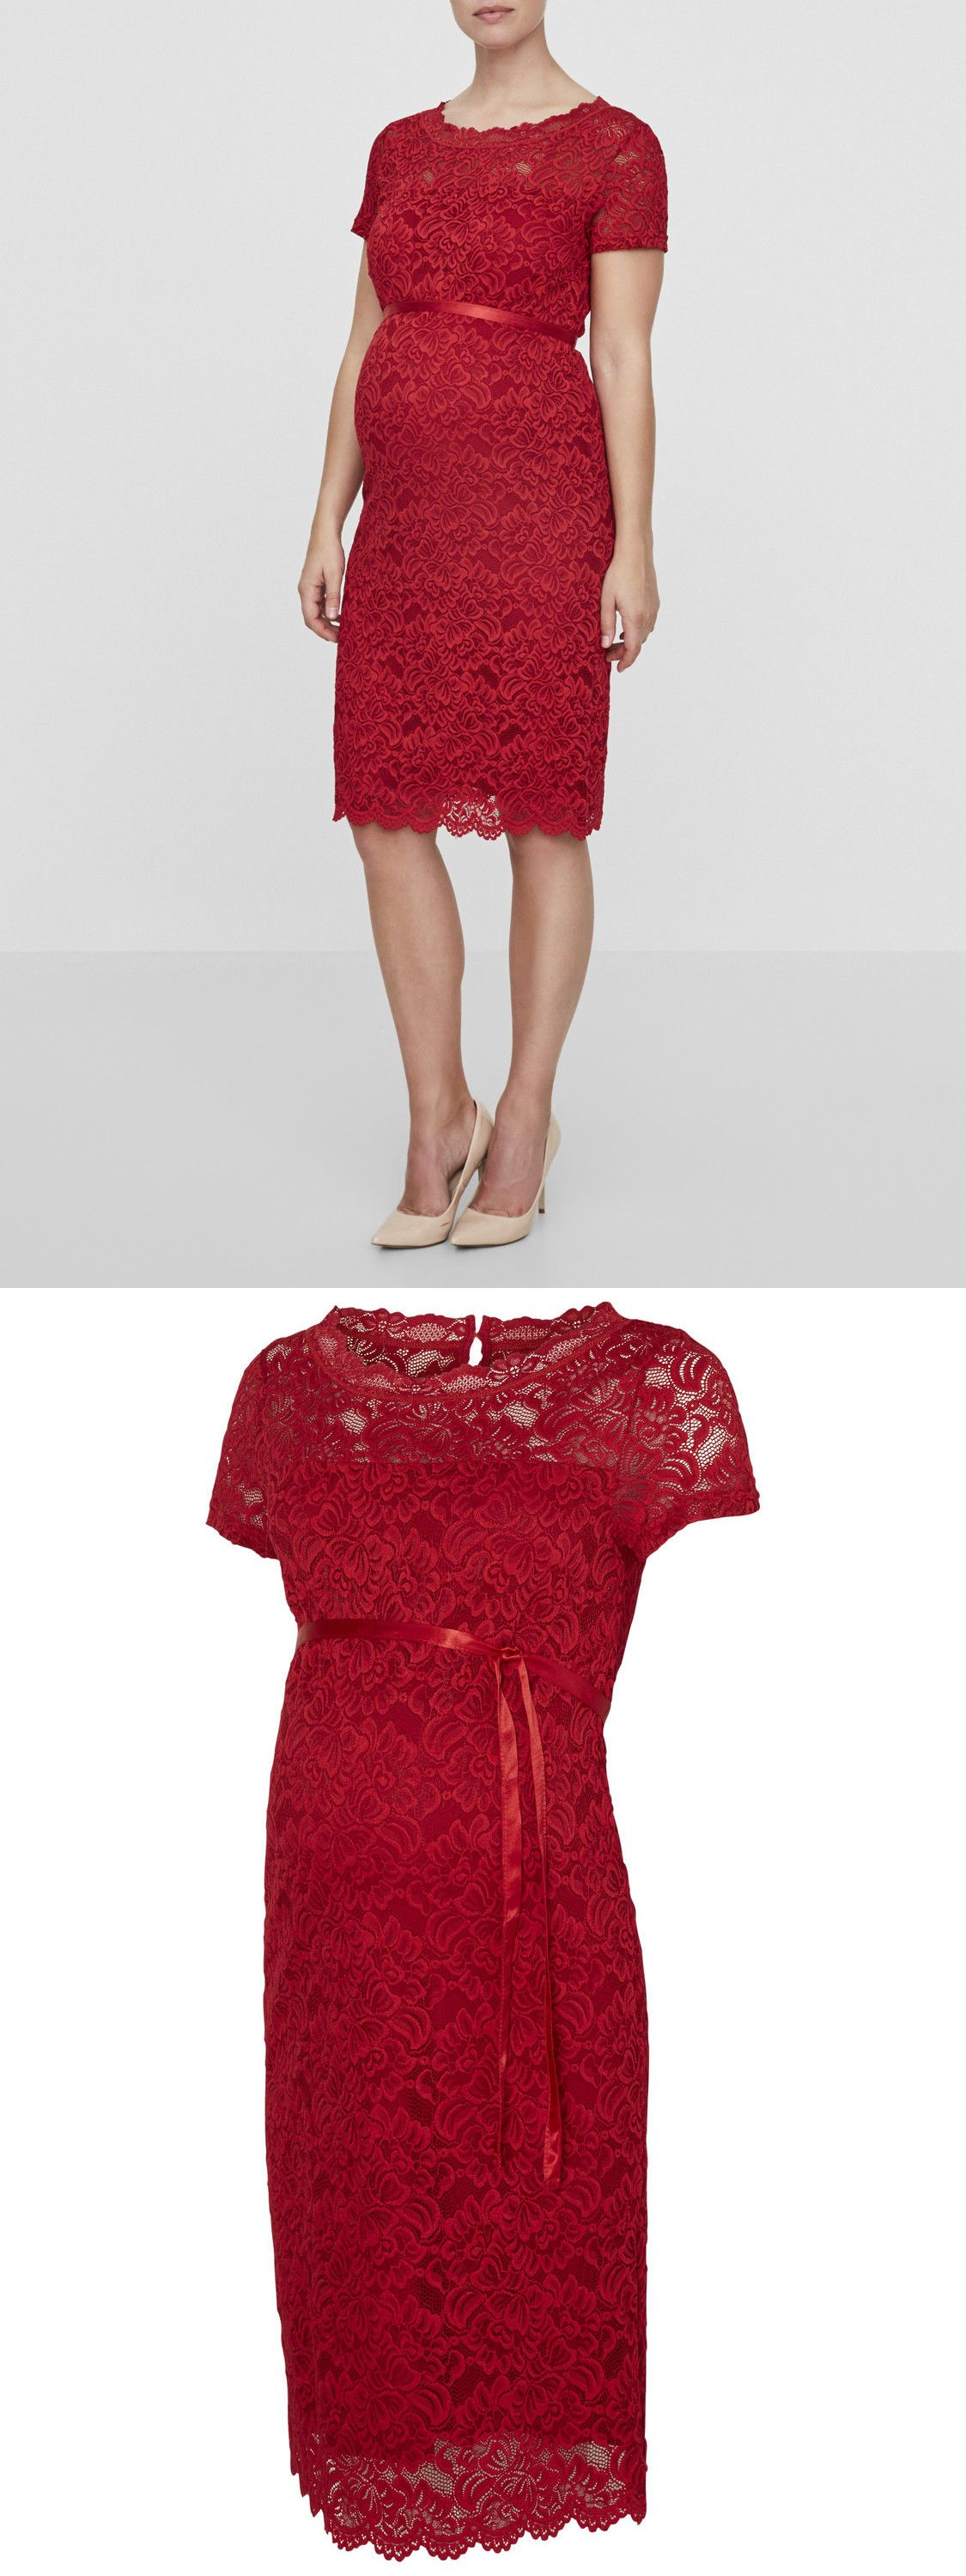 Dresses 11534 mamalicious maternity dress lace party special dresses 11534 mamalicious maternity dress lace party special occasion red christmas 38 rrp ombrellifo Images